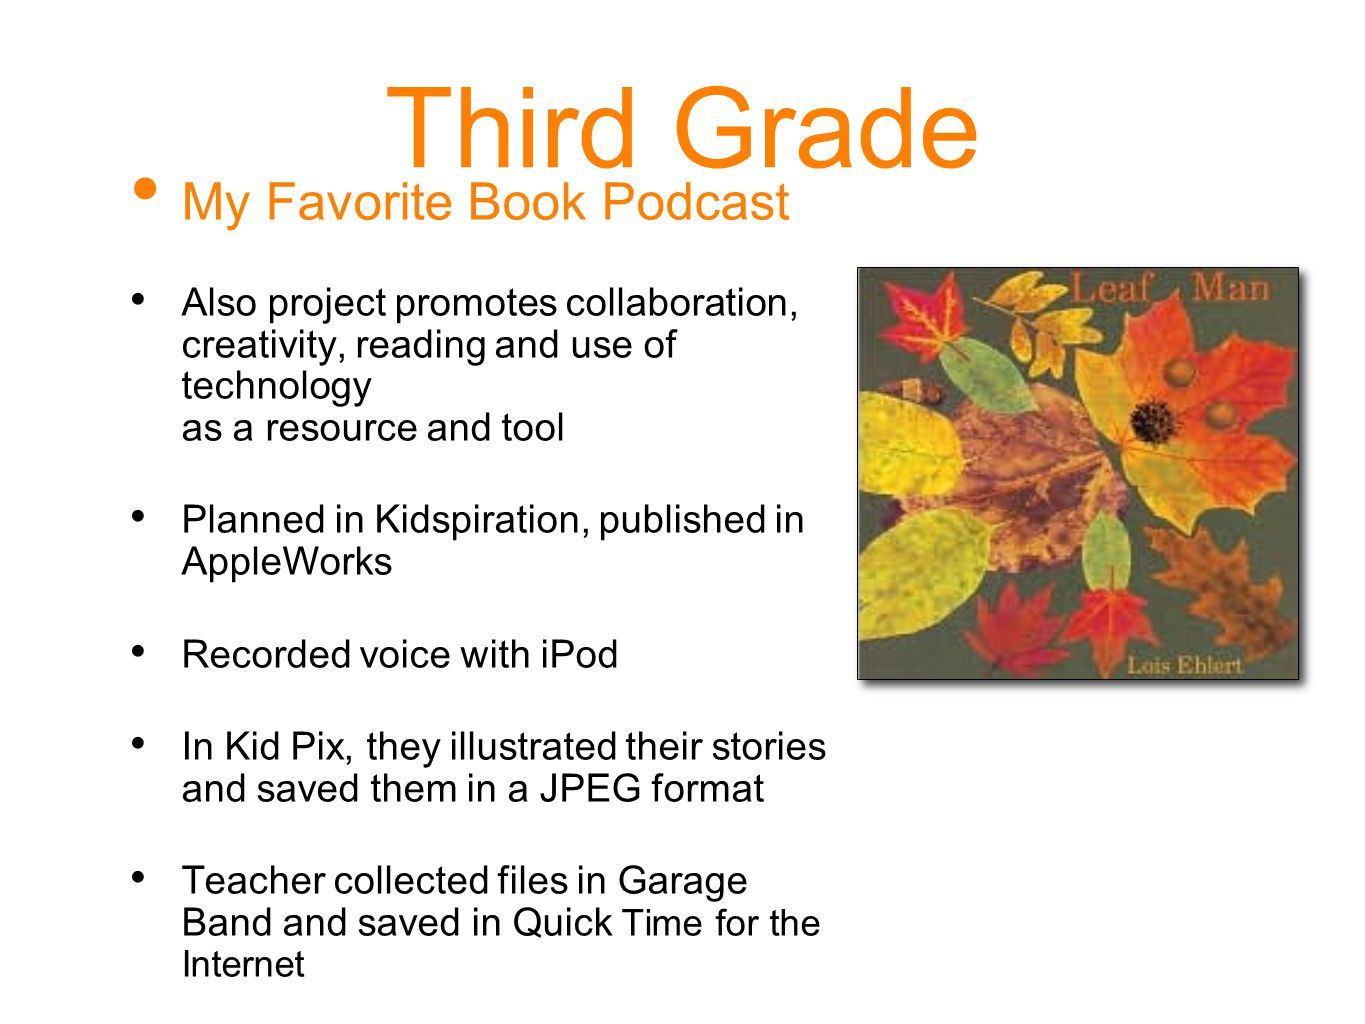 Third Grade My Favorite Book Podcast